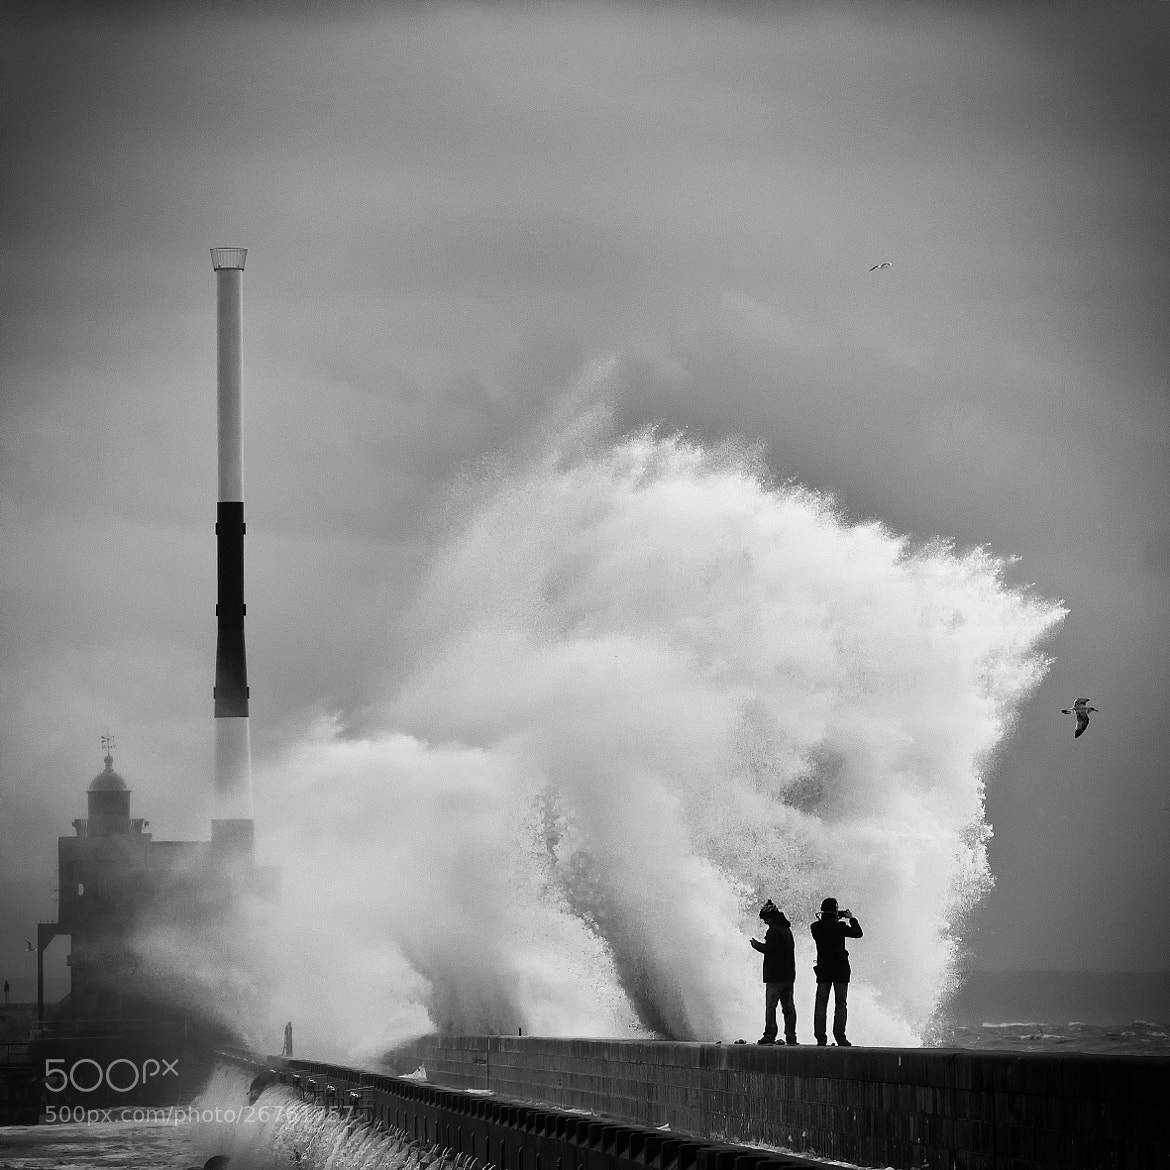 Photograph Storm in Le Havre - 1 by Patrice Carré on 500px